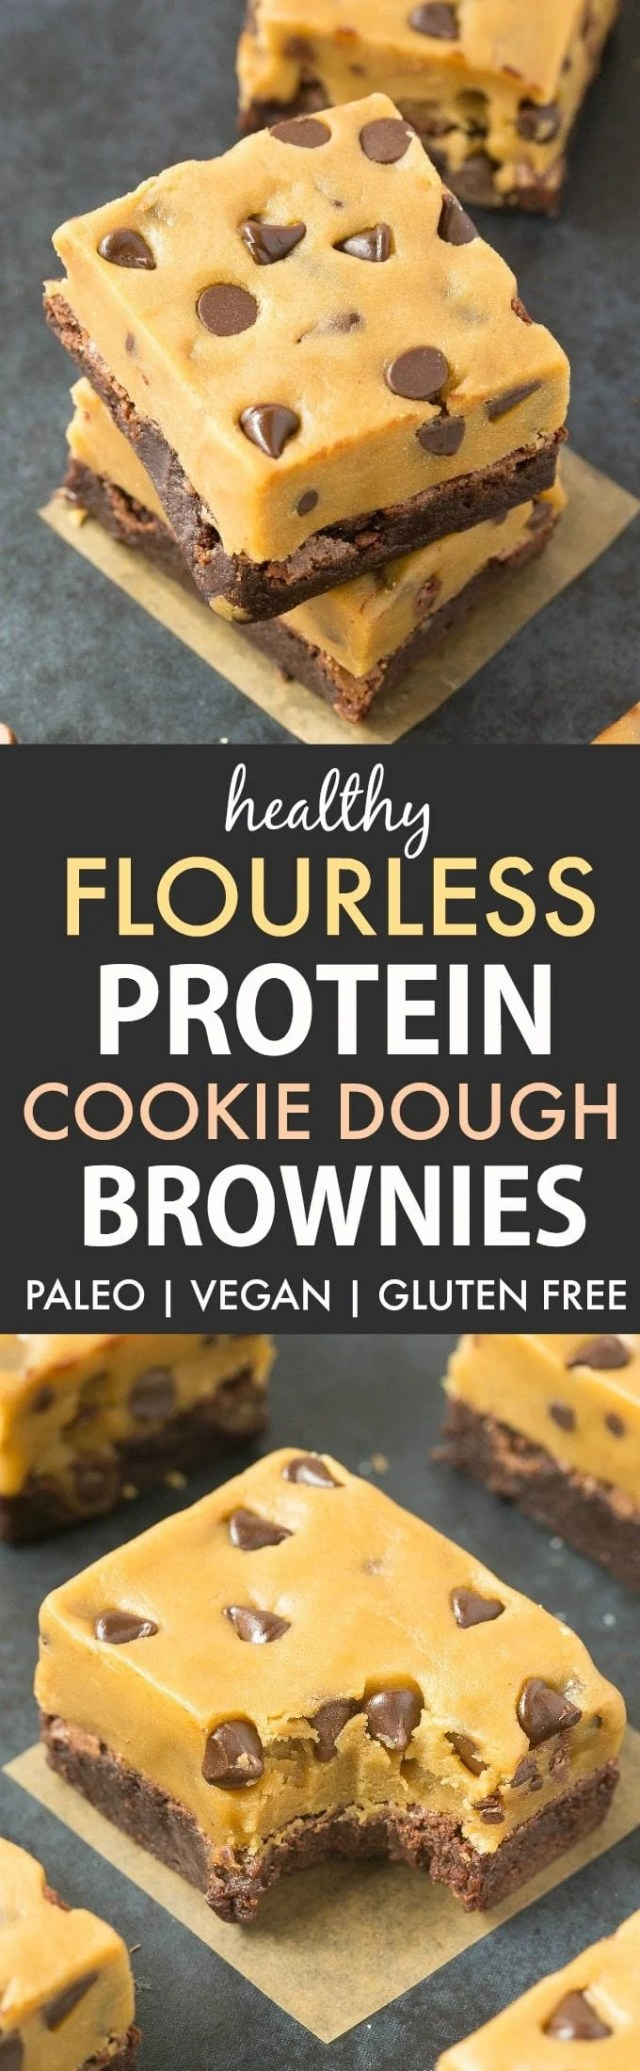 Healthy Protein Cookie Dough Brownies (V, GF, P)- Flourless Fudgy, gooey, Protein Brownies with a thick edible eggless and egg-free cookie dough frosting, completely healthy! {vegan, gluten free, paleo recipe}- thebigmansworld.com #proteinpowder #ediblecookiedough #healthydessert